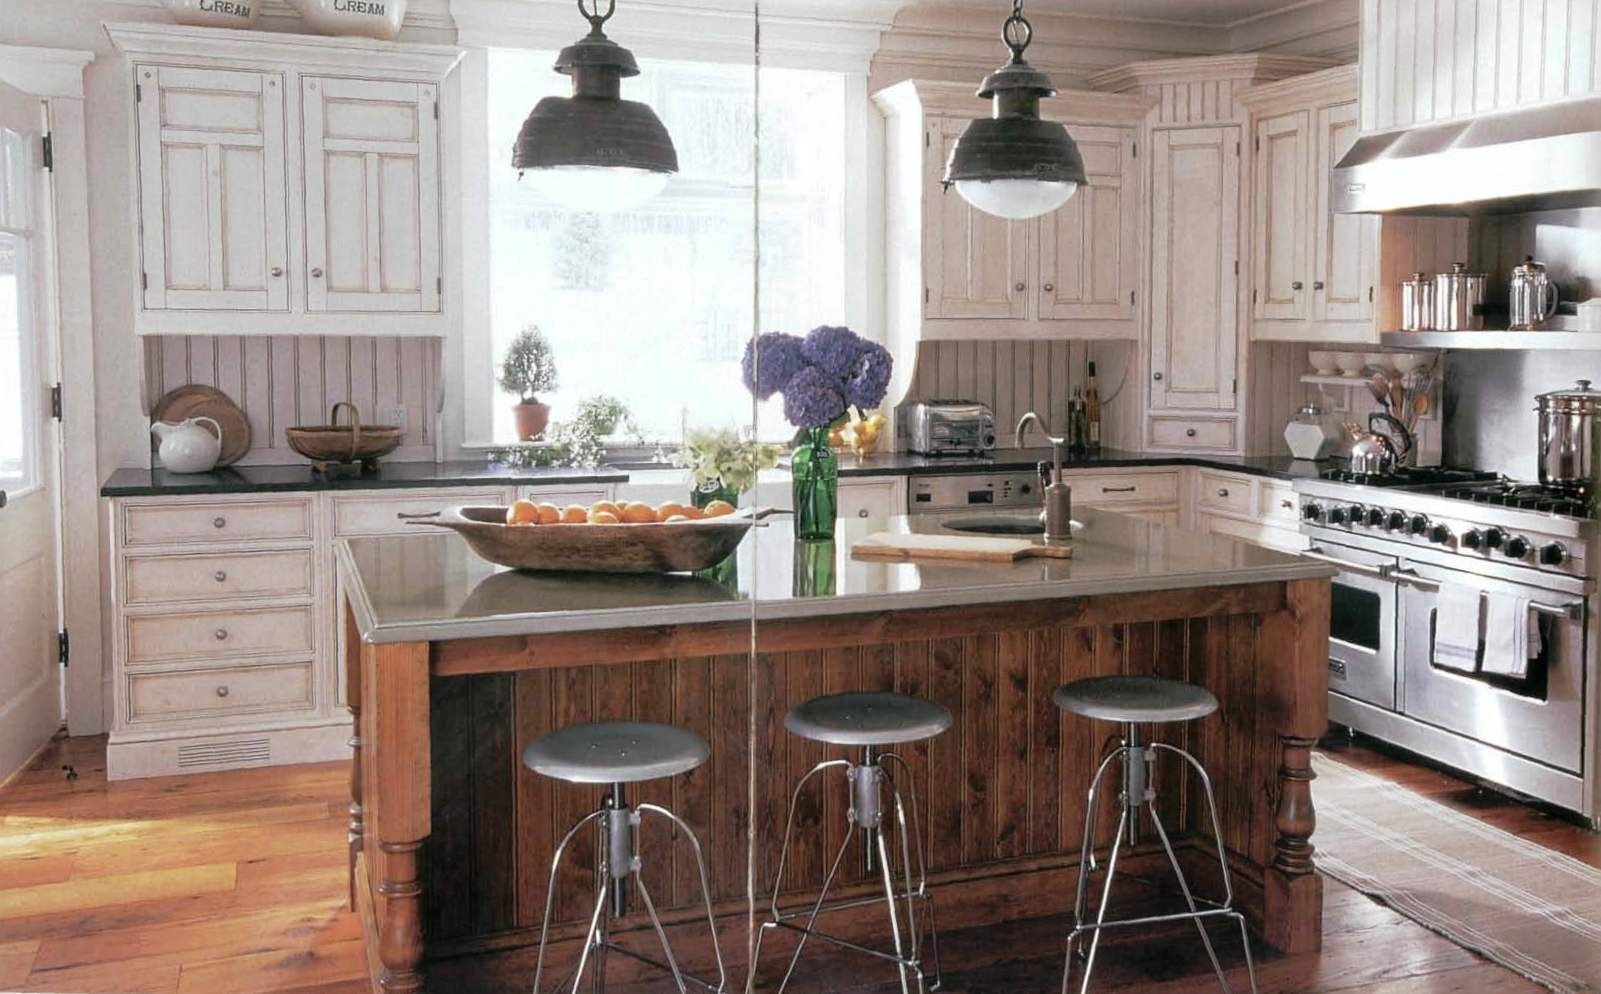 country living 500 kitchen ideas country living 500 kitchen ideas decorating ideas 23381